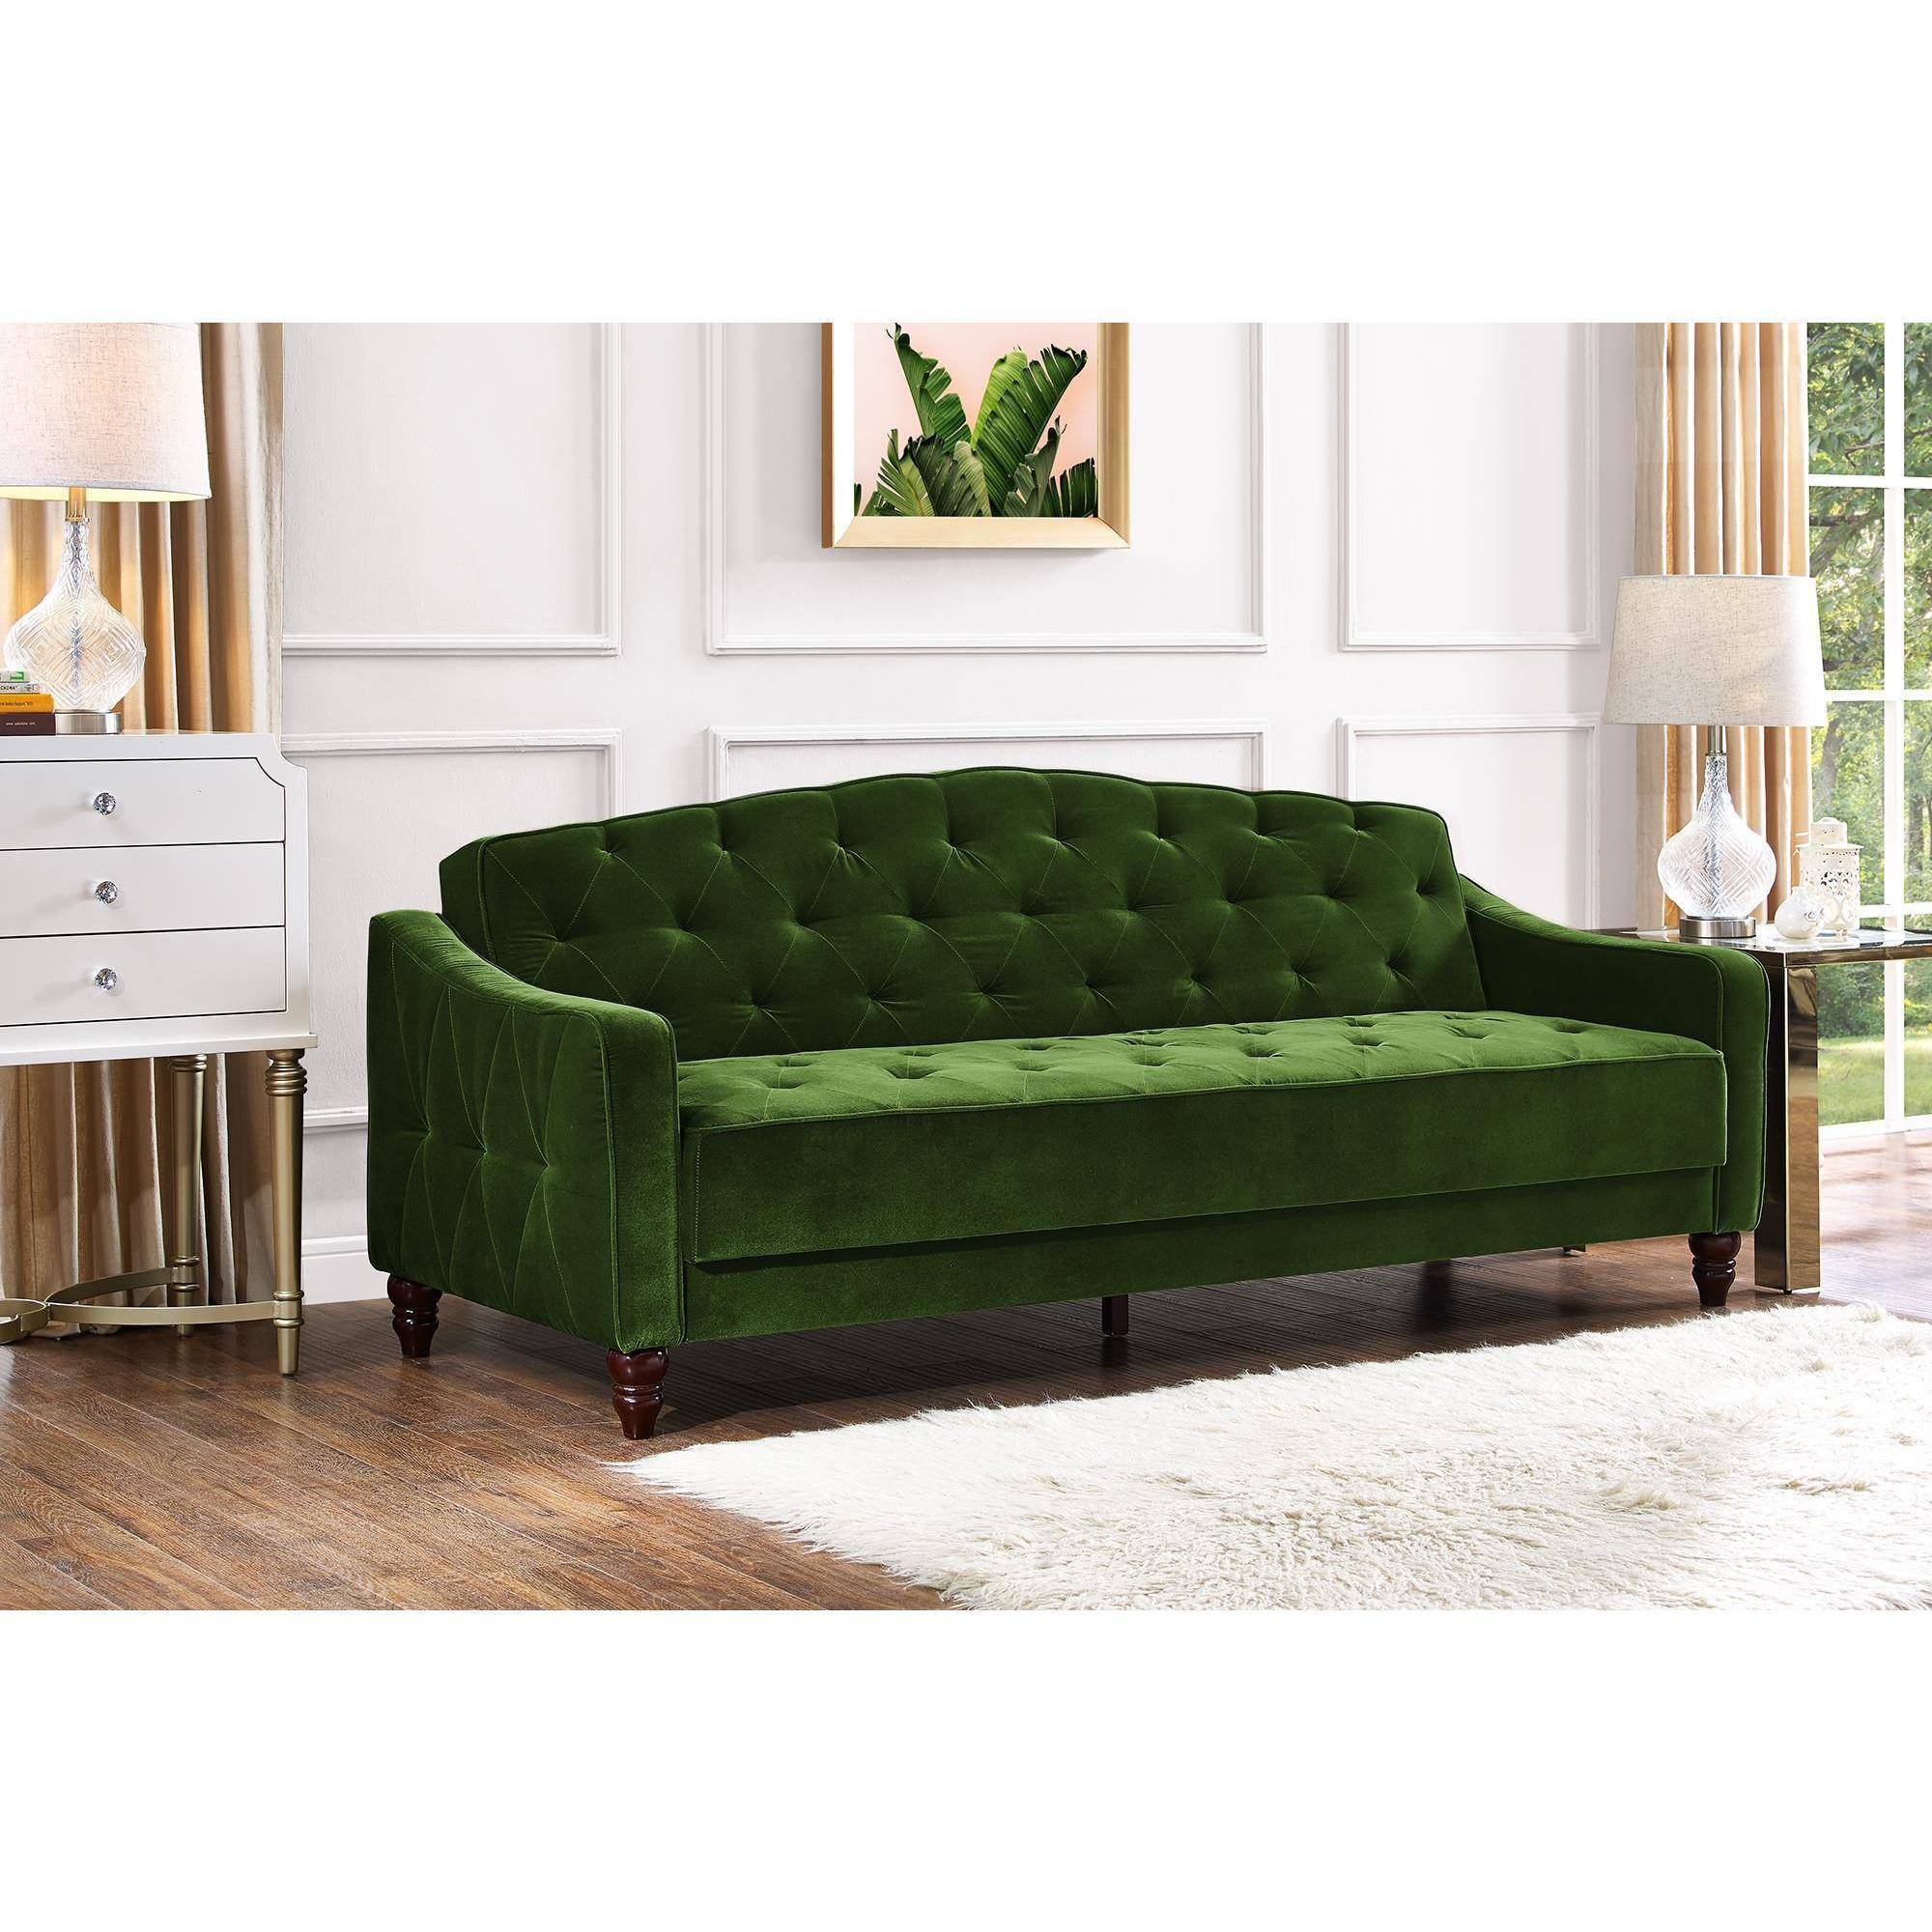 Novogratz Vintage Tufted Sofa Sleeper II Multiple Colors